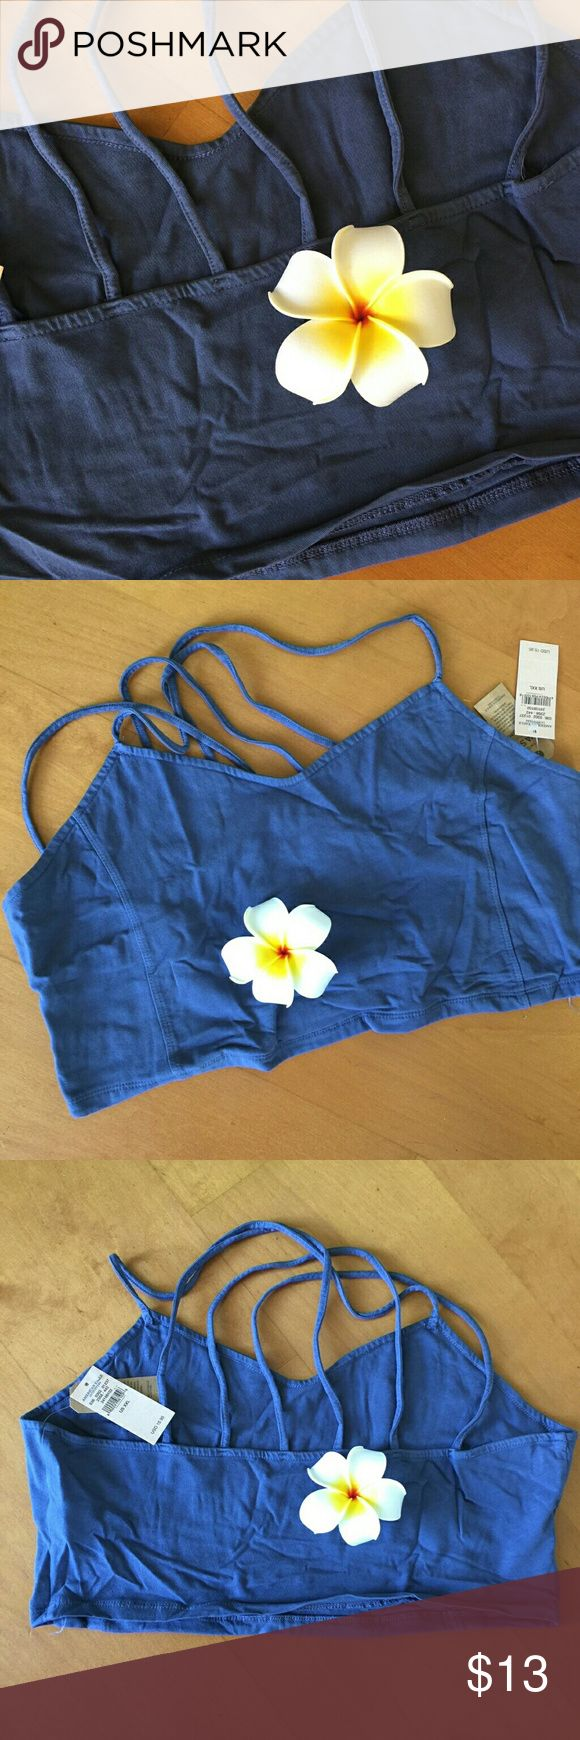 New faded Dark blue strappy top size XXL Cute Crop top with a Bustier styling. New with tags from AEO. 95% cotton 5% elastane.  First and last photo show closet color match. Strappy criss cross back..XXl American Eagle Outfitters Tops Crop Tops